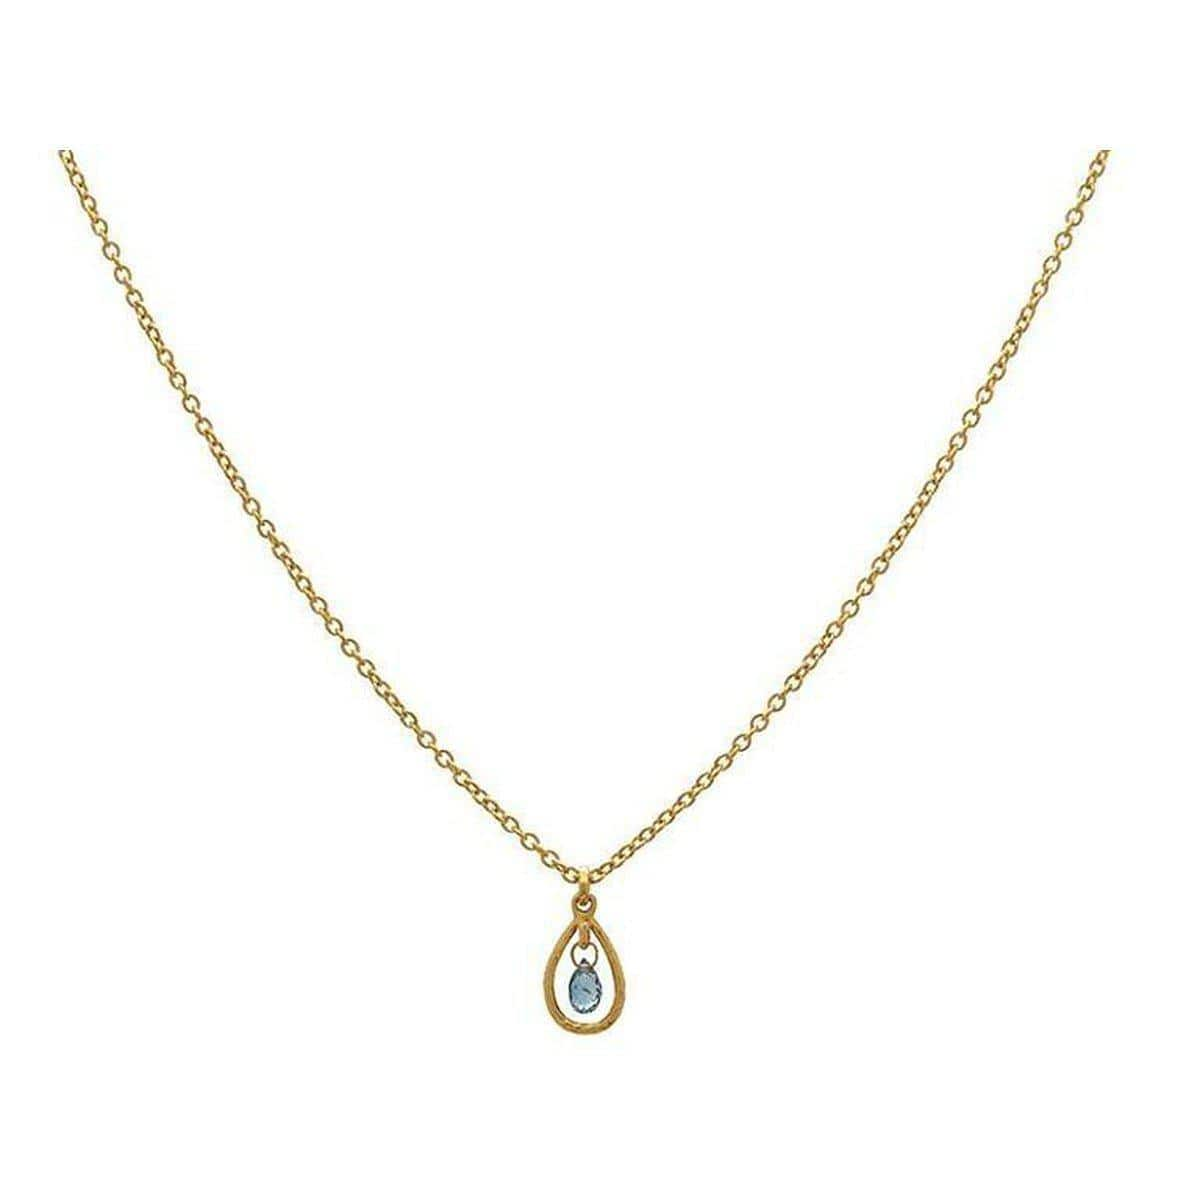 Delicate Hue 22K Gold Sapphire Necklace - CHN-FSB-1FR-1BL-18-GURHAN-Renee Taylor Gallery